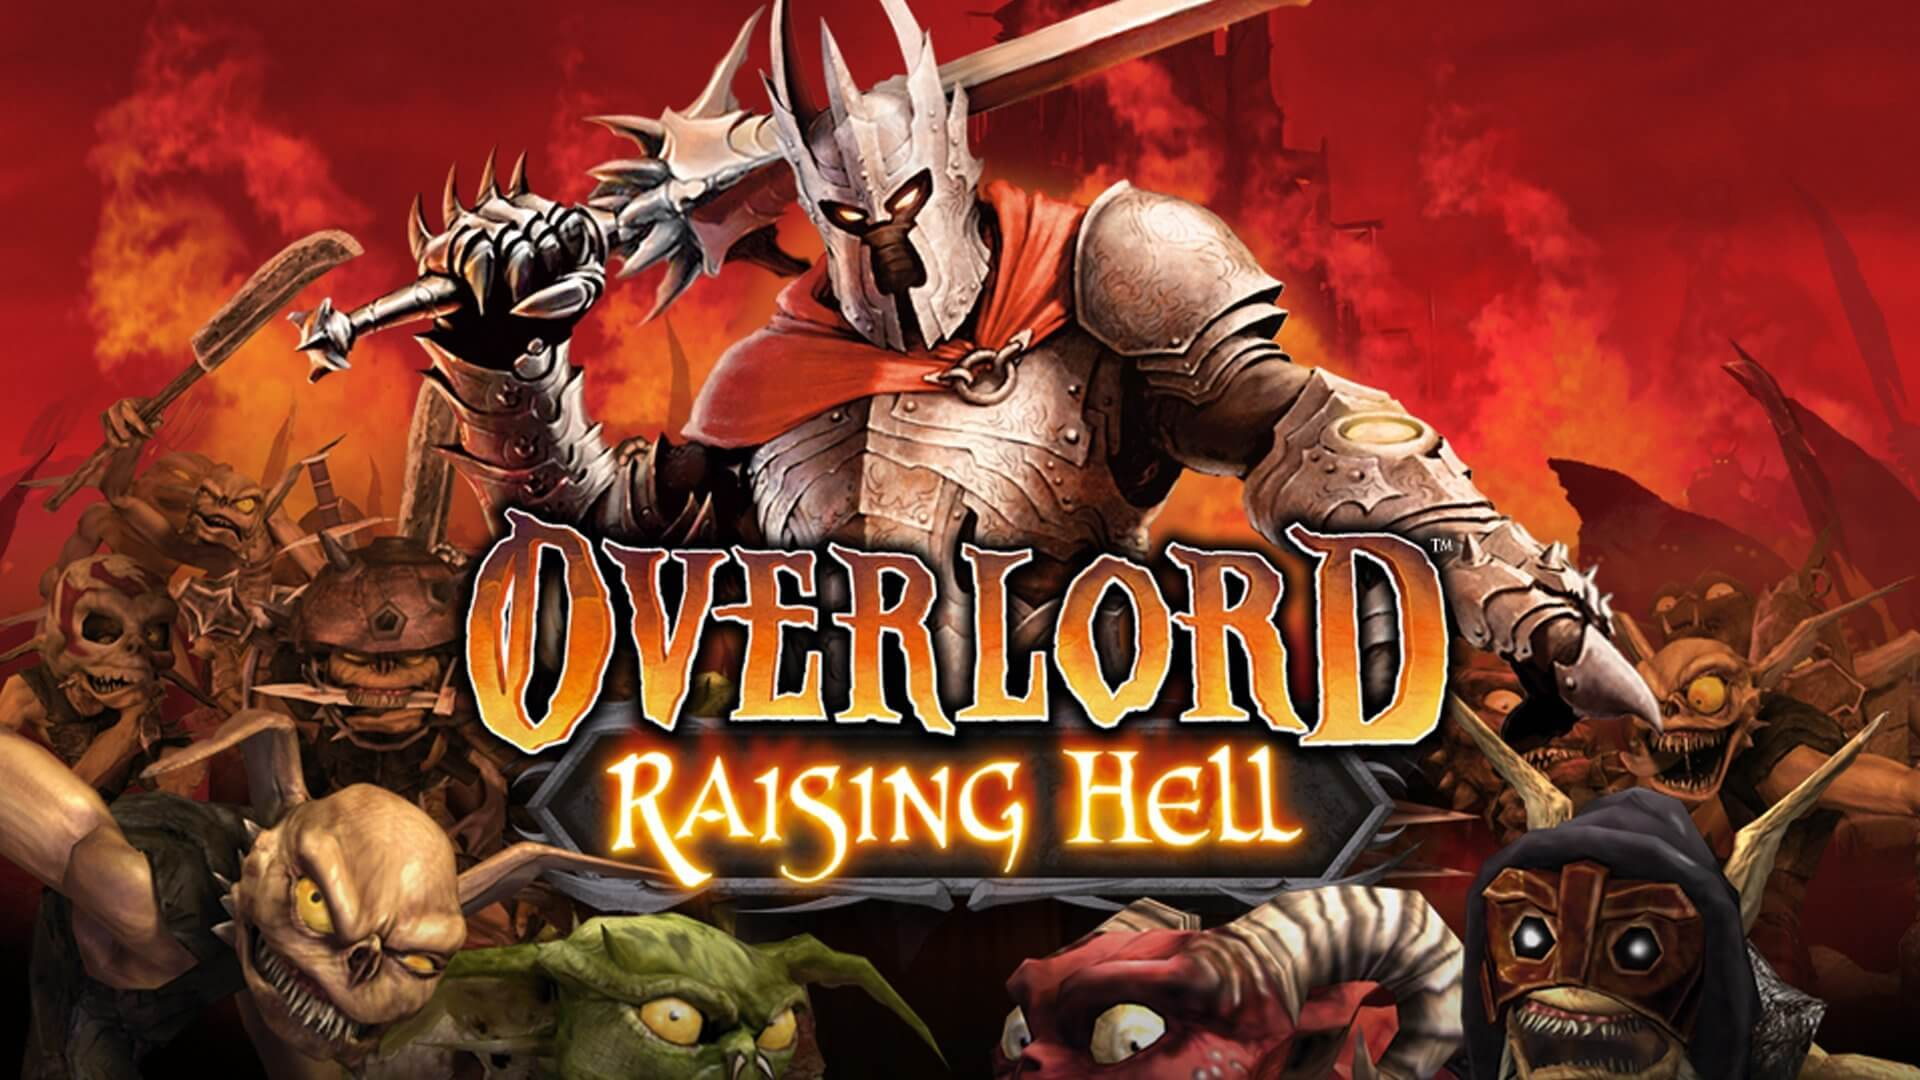 Overlord Raising Hell Review Hermitgamer